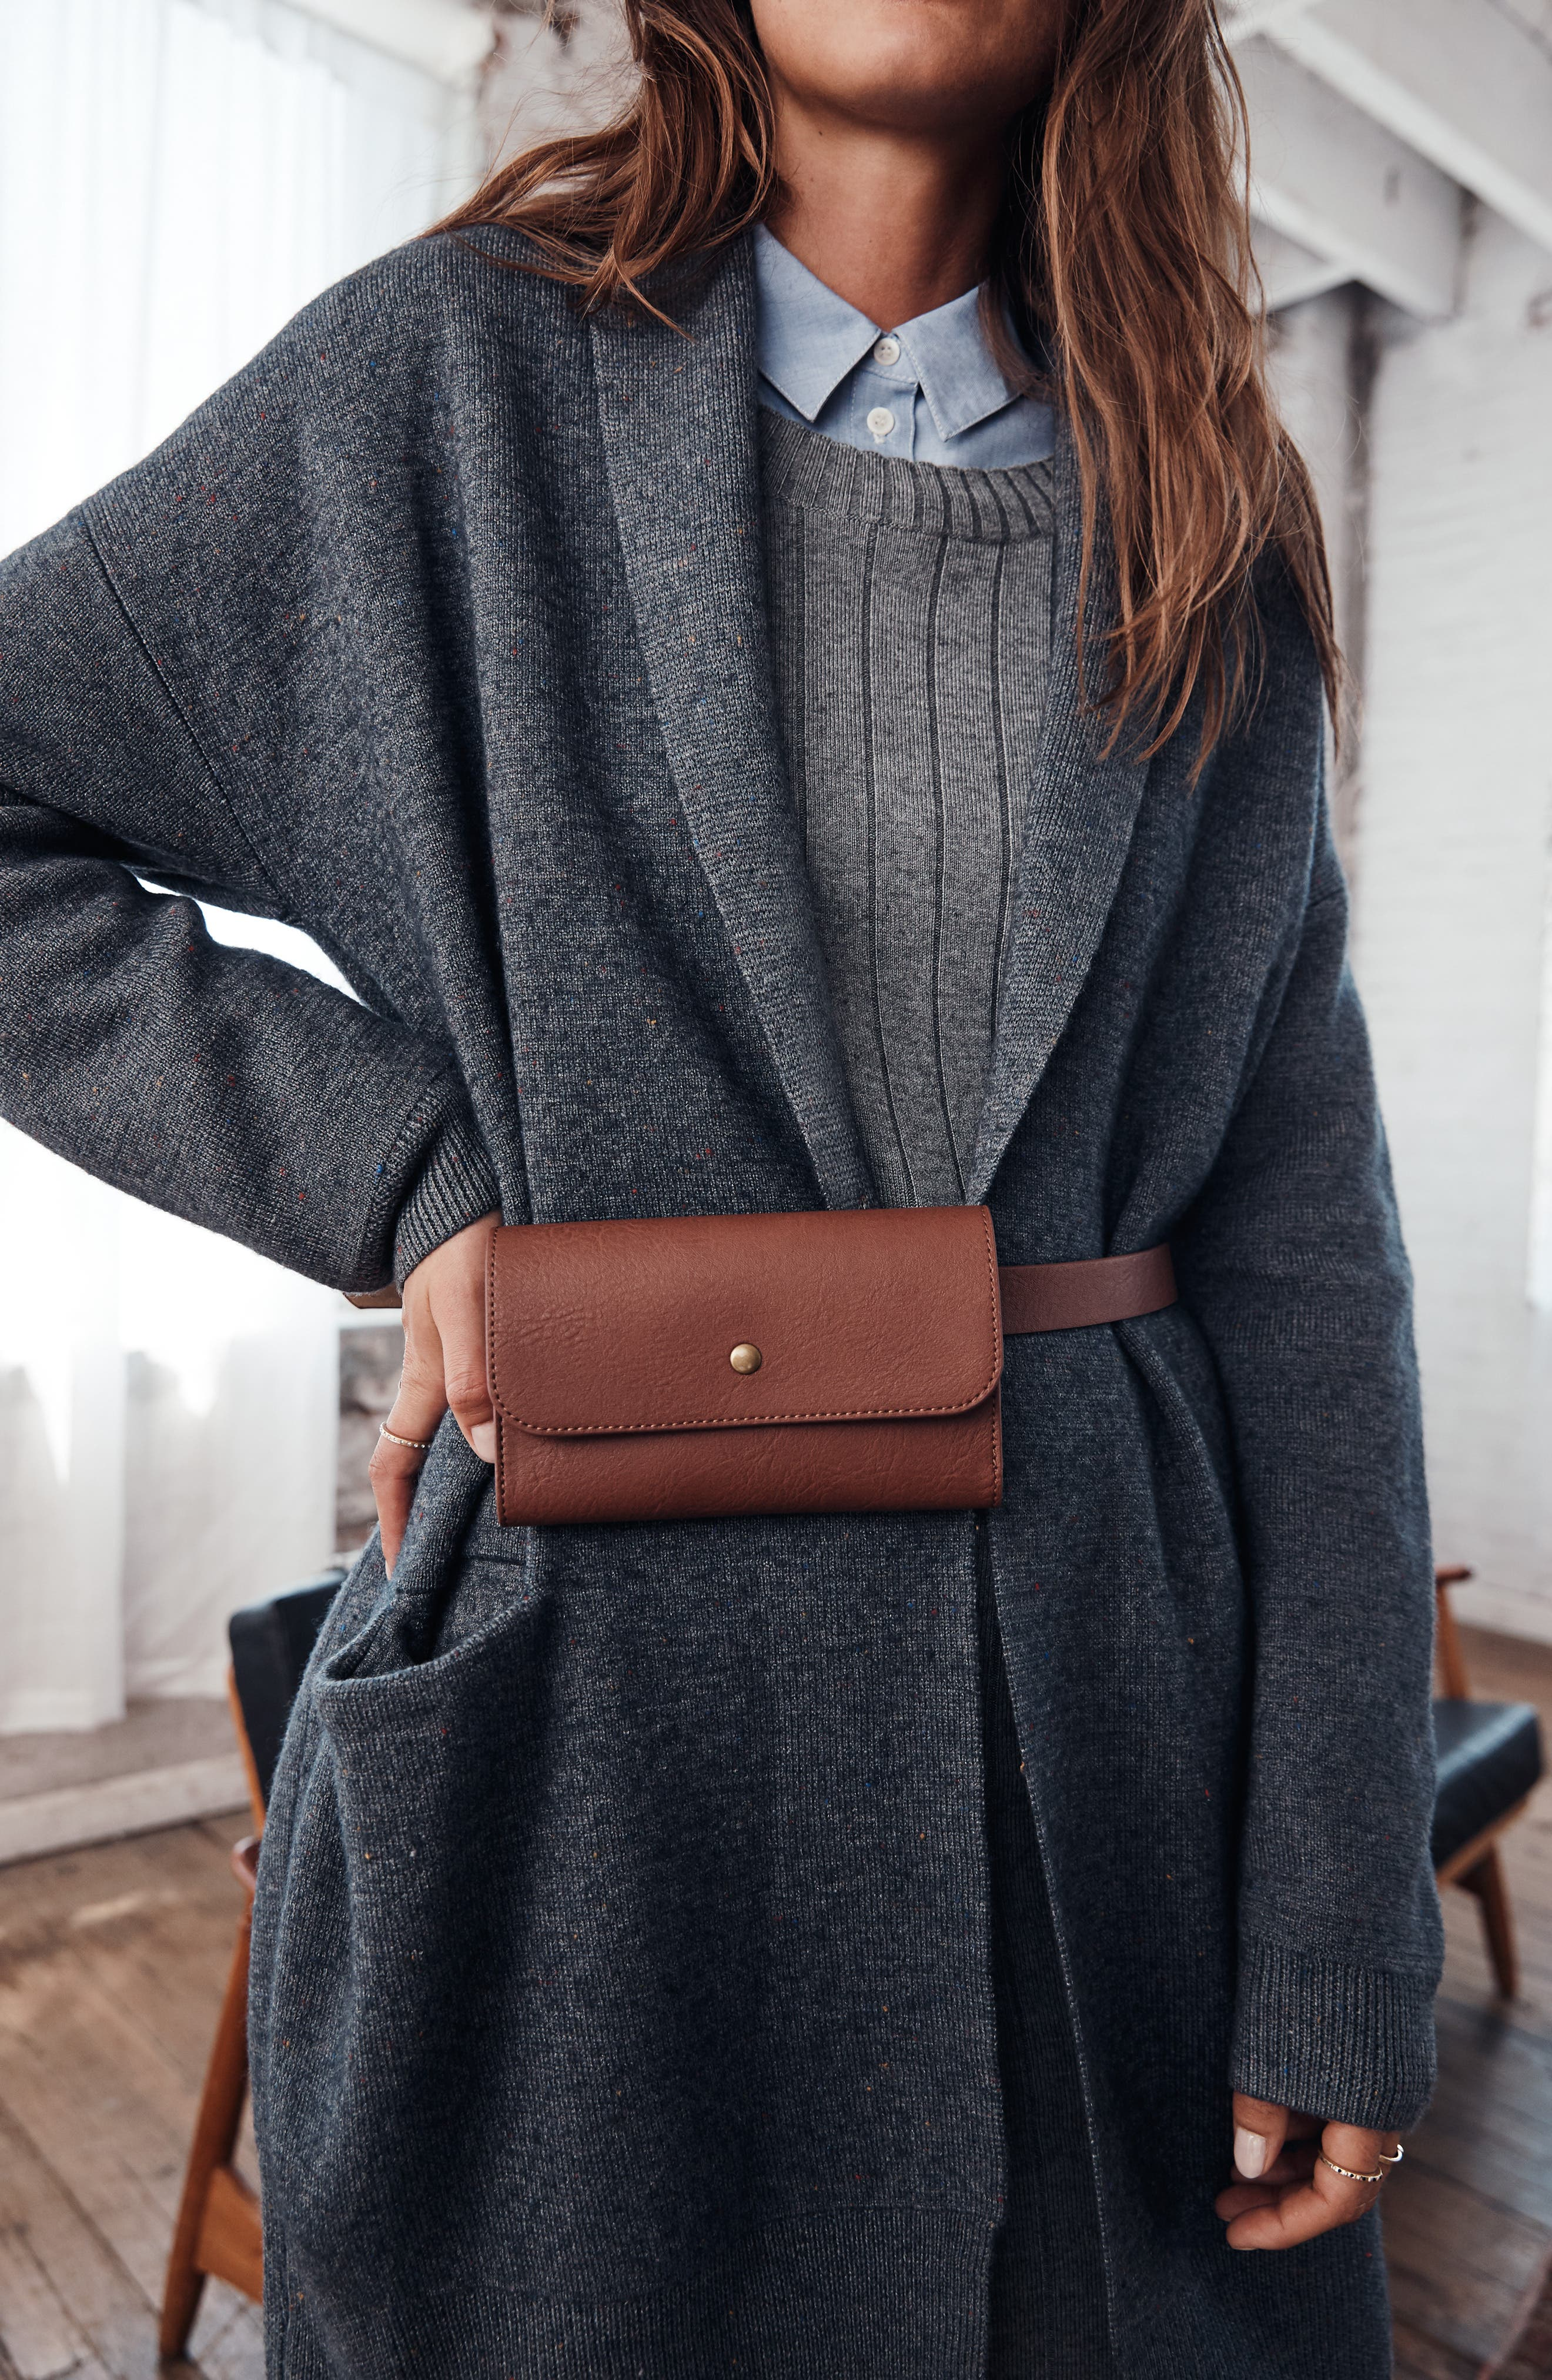 Ribbed Sweater Dress,                             Alternate thumbnail 8, color,                             GREY DARK HEATHER